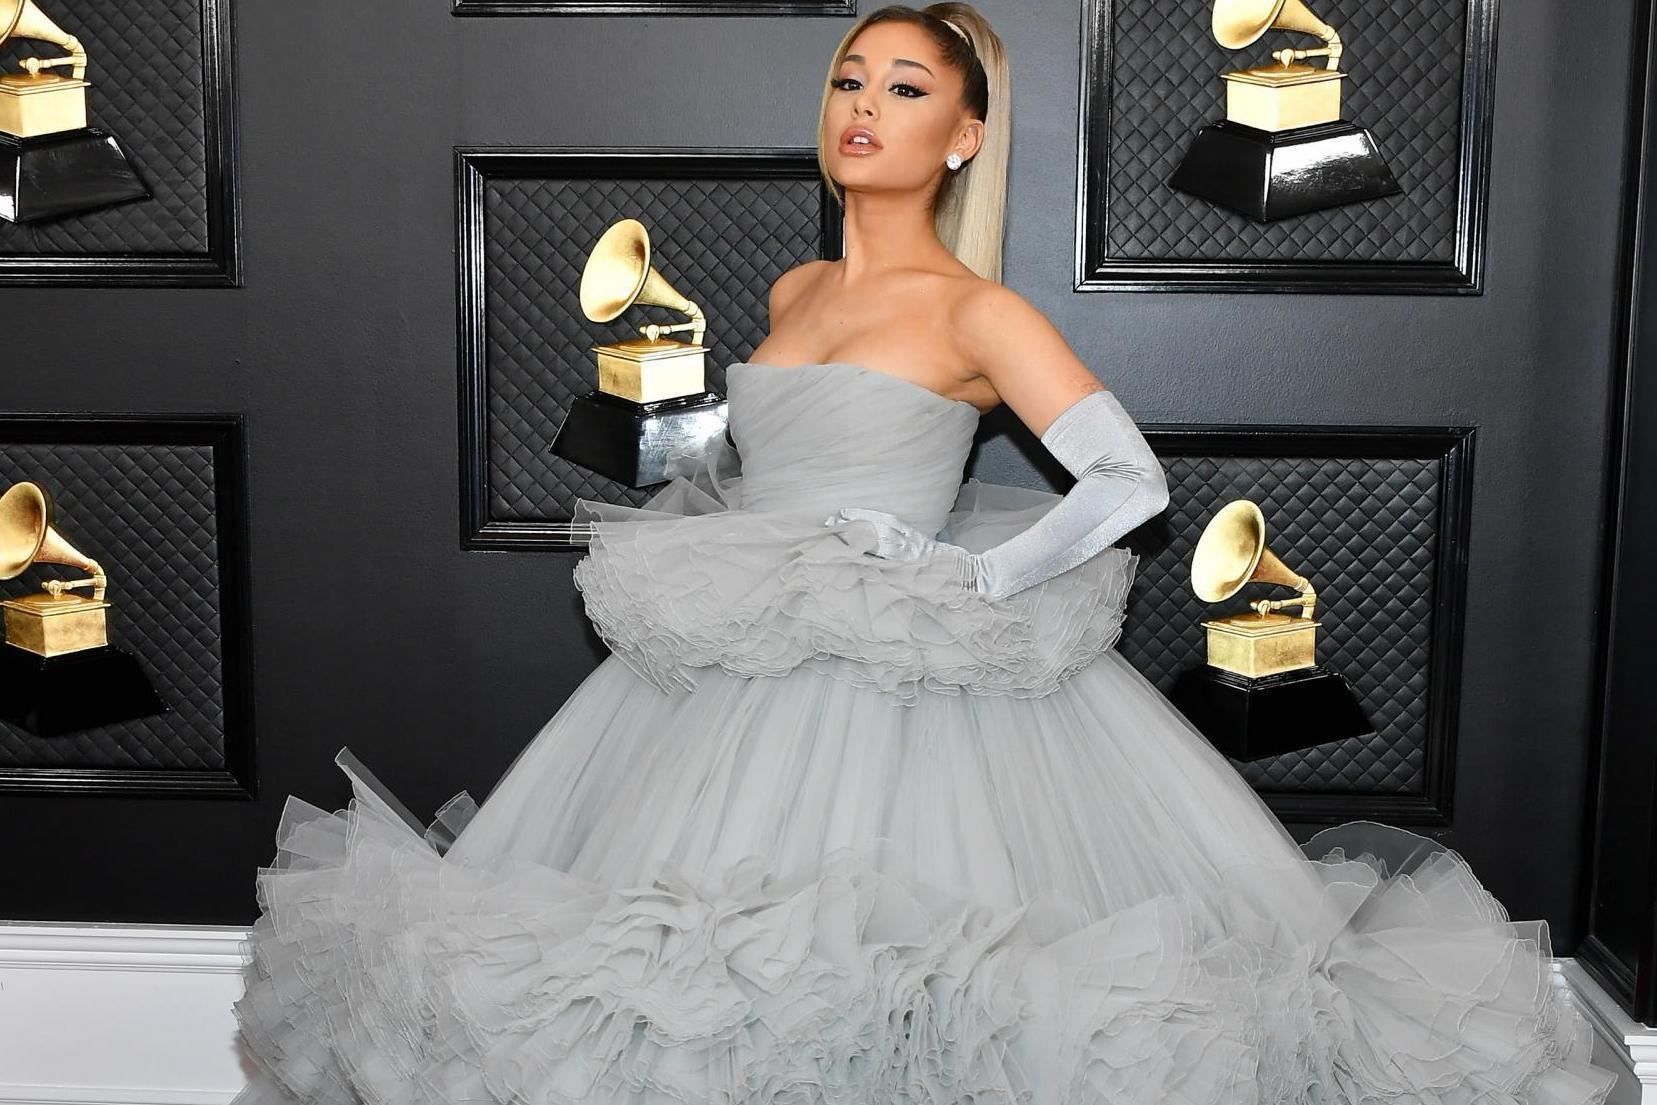 grammys 2020 the best dressed stars on the red carpet from ariana grande to billy porter the independent the independent grammys 2020 the best dressed stars on